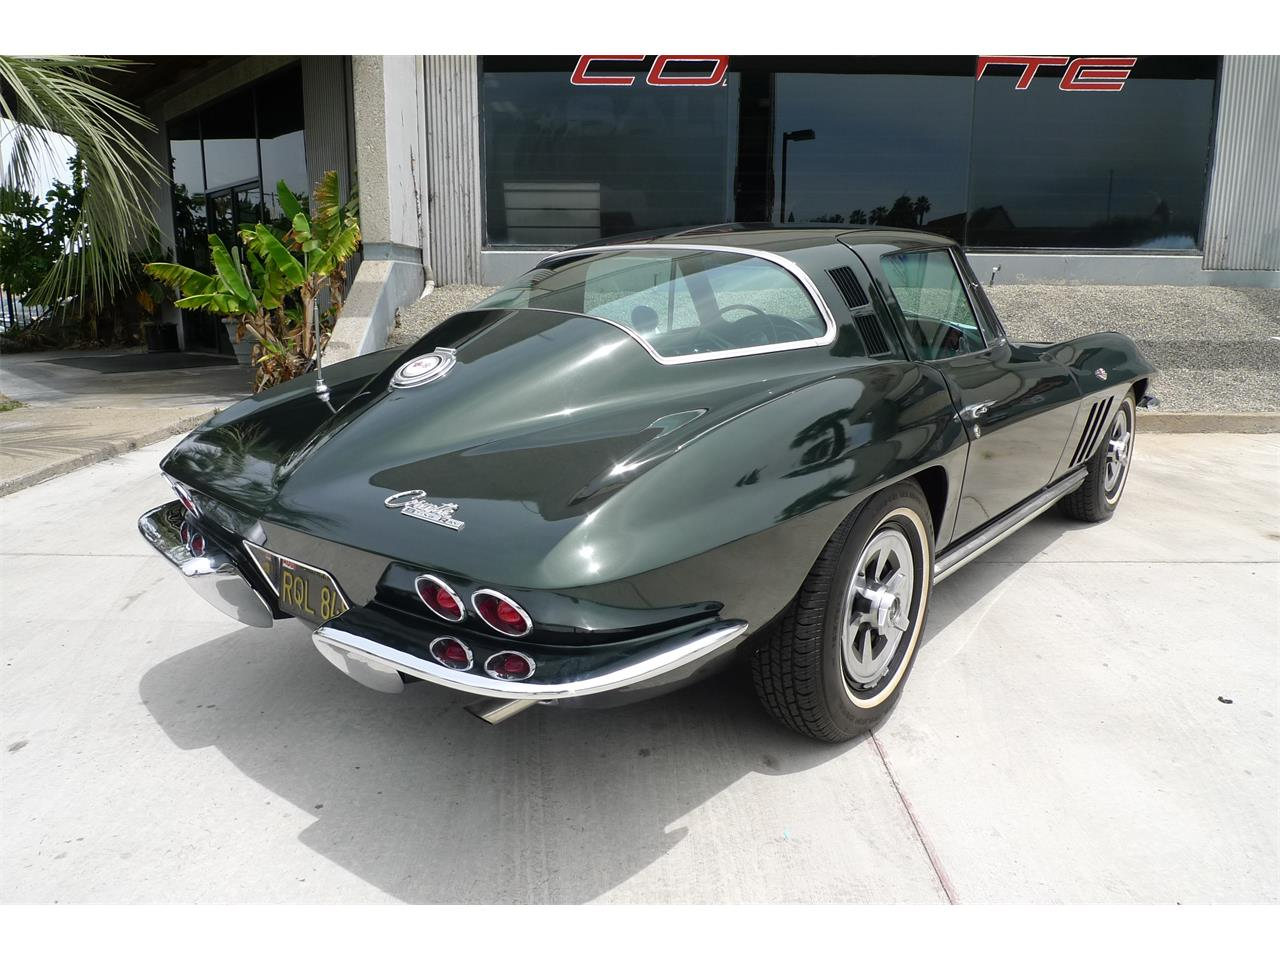 Large Picture of 1965 Corvette located in California - $49,975.00 Offered by Coast Corvette - Q4J8